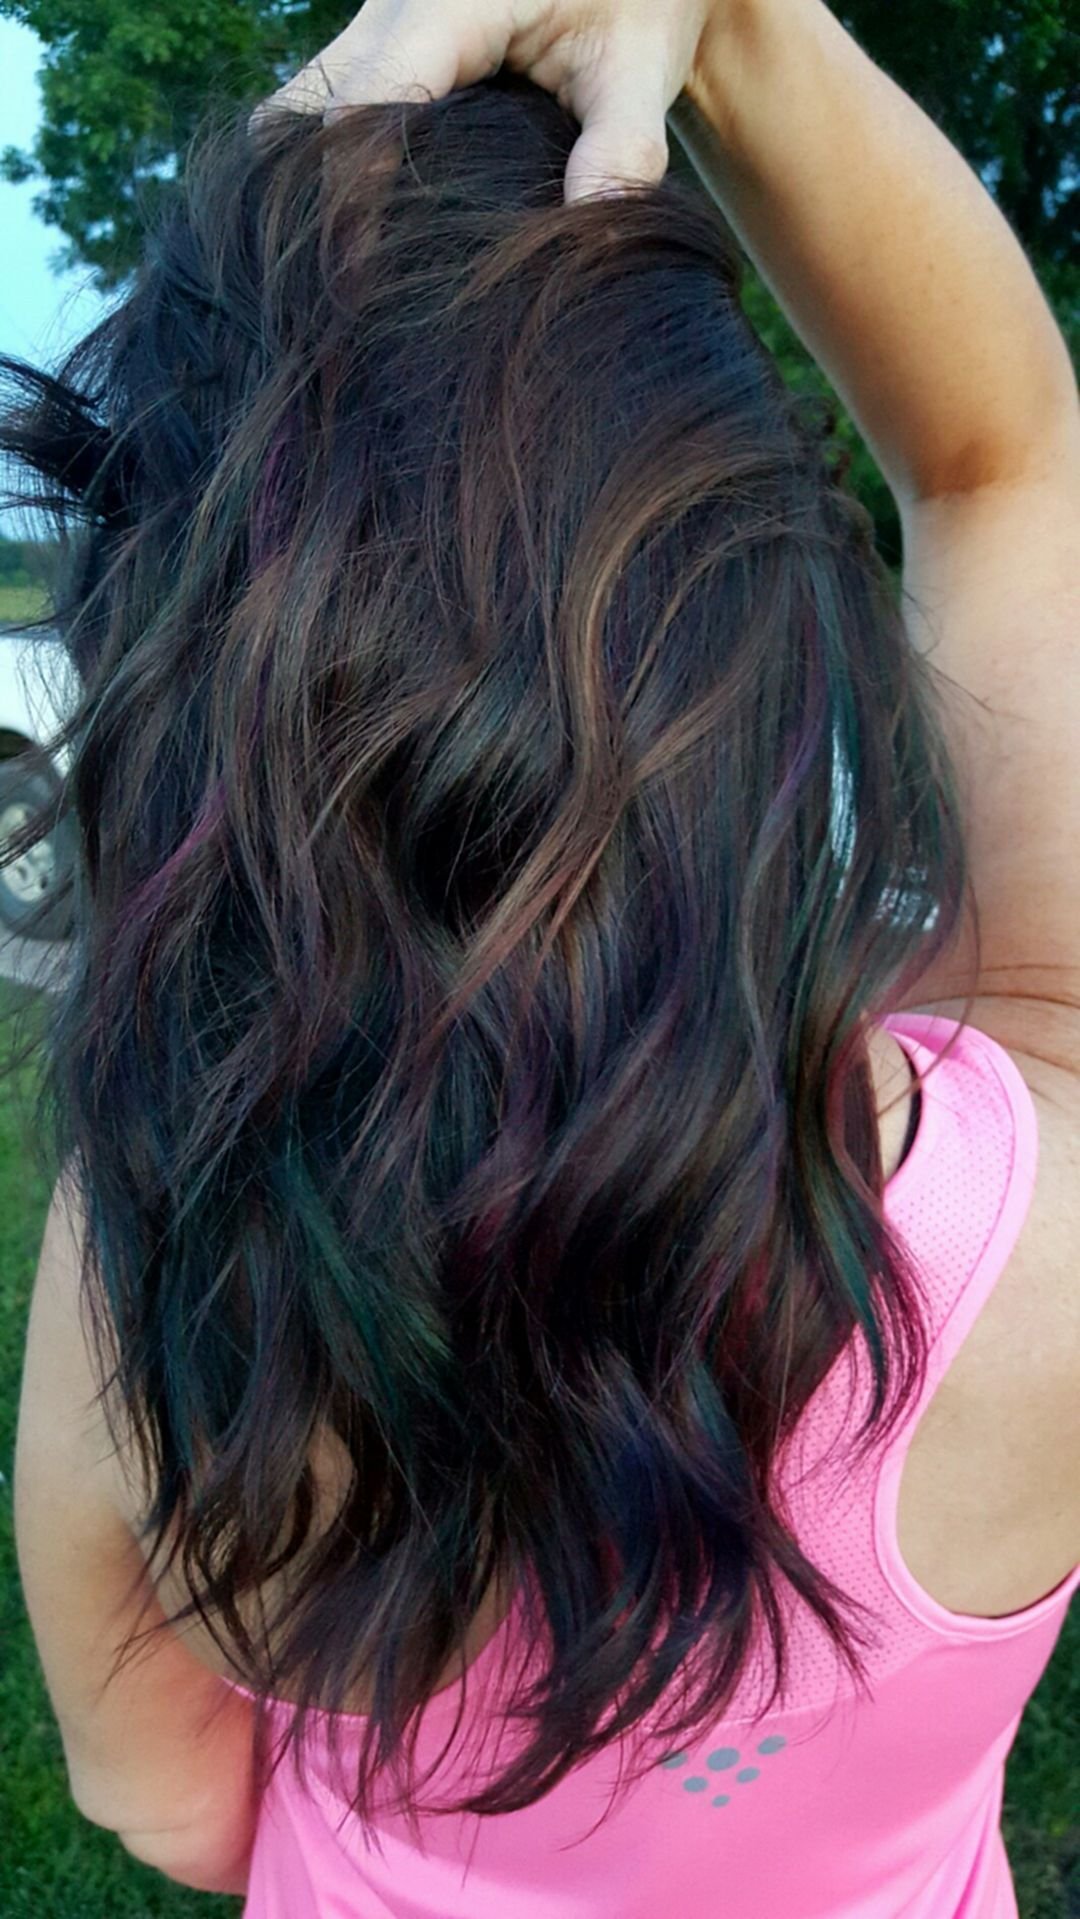 Change Your Hairstyle Online Women | Oil slick hair, Slicked hair ...